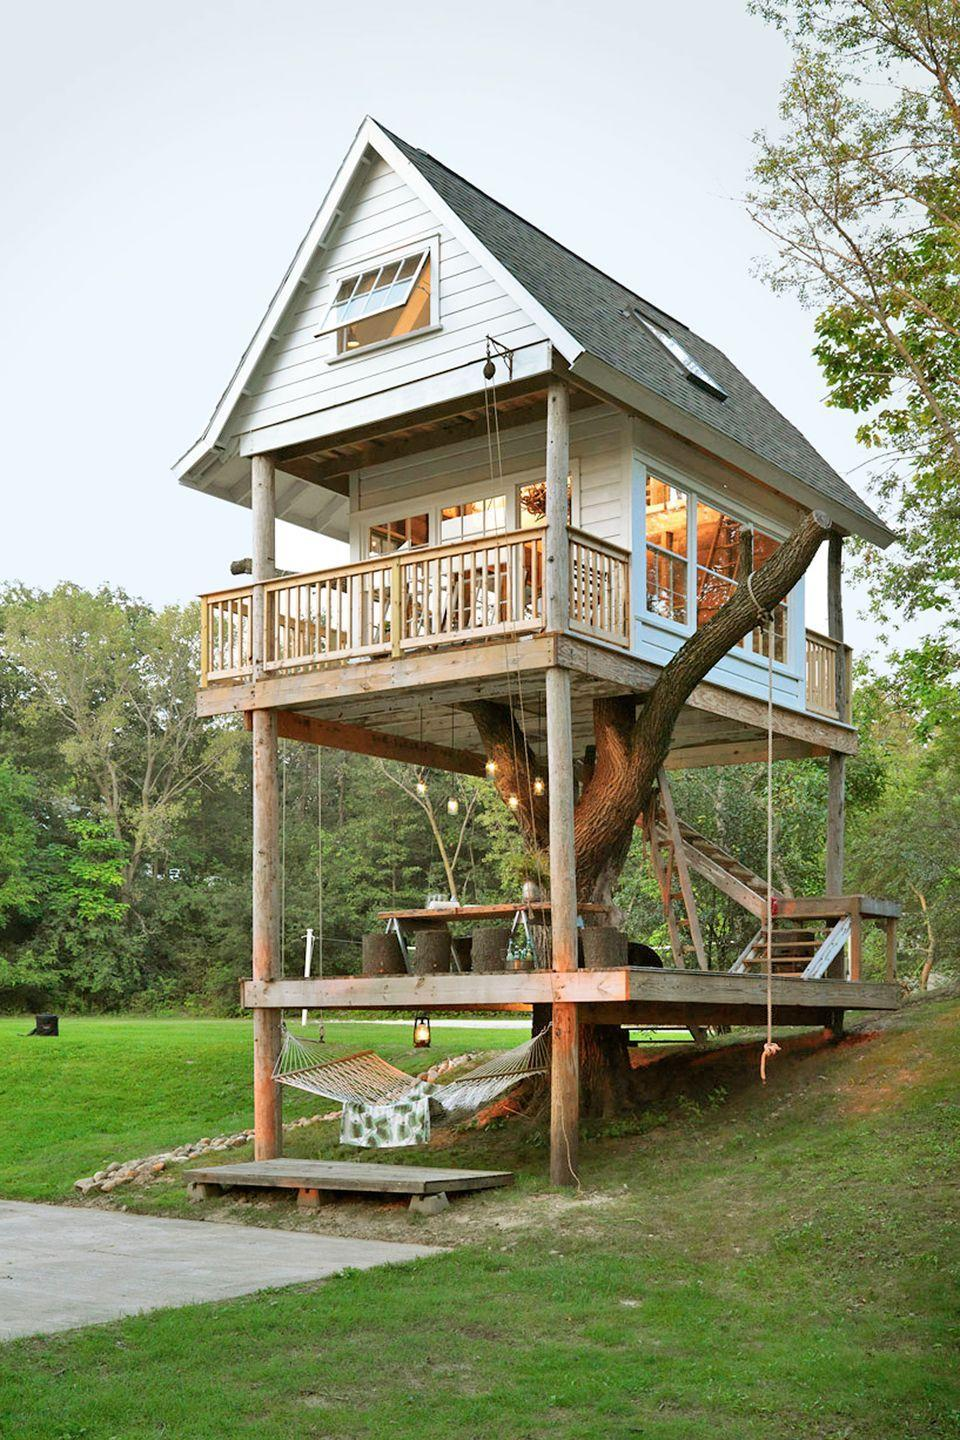 """<p>With its <a href=""""https://www.countryliving.com/outdoor/outdoor-living/adult-summer-camps#category1-1"""" rel=""""nofollow noopener"""" target=""""_blank"""" data-ylk=""""slk:1920s cabins"""" class=""""link rapid-noclick-resp"""">1920s cabins</a> and vintage Boy Scout tents, <a href=""""http://www.wandawega.com/"""" rel=""""nofollow noopener"""" target=""""_blank"""" data-ylk=""""slk:Camp Wandawega"""" class=""""link rapid-noclick-resp"""">Camp Wandawega</a>, located in Elkhorn, Wisconsin, evokes the set of Wes Anderson's <em>Moonrise Kingdom. </em>But the camp's most charming feature is its three-level treehouse, built around a massive elm tree and outfitted with Pendleton blankets, tree swings, and Mason jar light fixtures. Used as a common space, guests can read a book in the treehouse's library on a rainy day or spend a lazy afternoon on the bottom-level hammock. </p><p><a class=""""link rapid-noclick-resp"""" href=""""http://www.wandawega.com/tour/treehouse/"""" rel=""""nofollow noopener"""" target=""""_blank"""" data-ylk=""""slk:SEE INSIDE"""">SEE INSIDE</a></p>"""